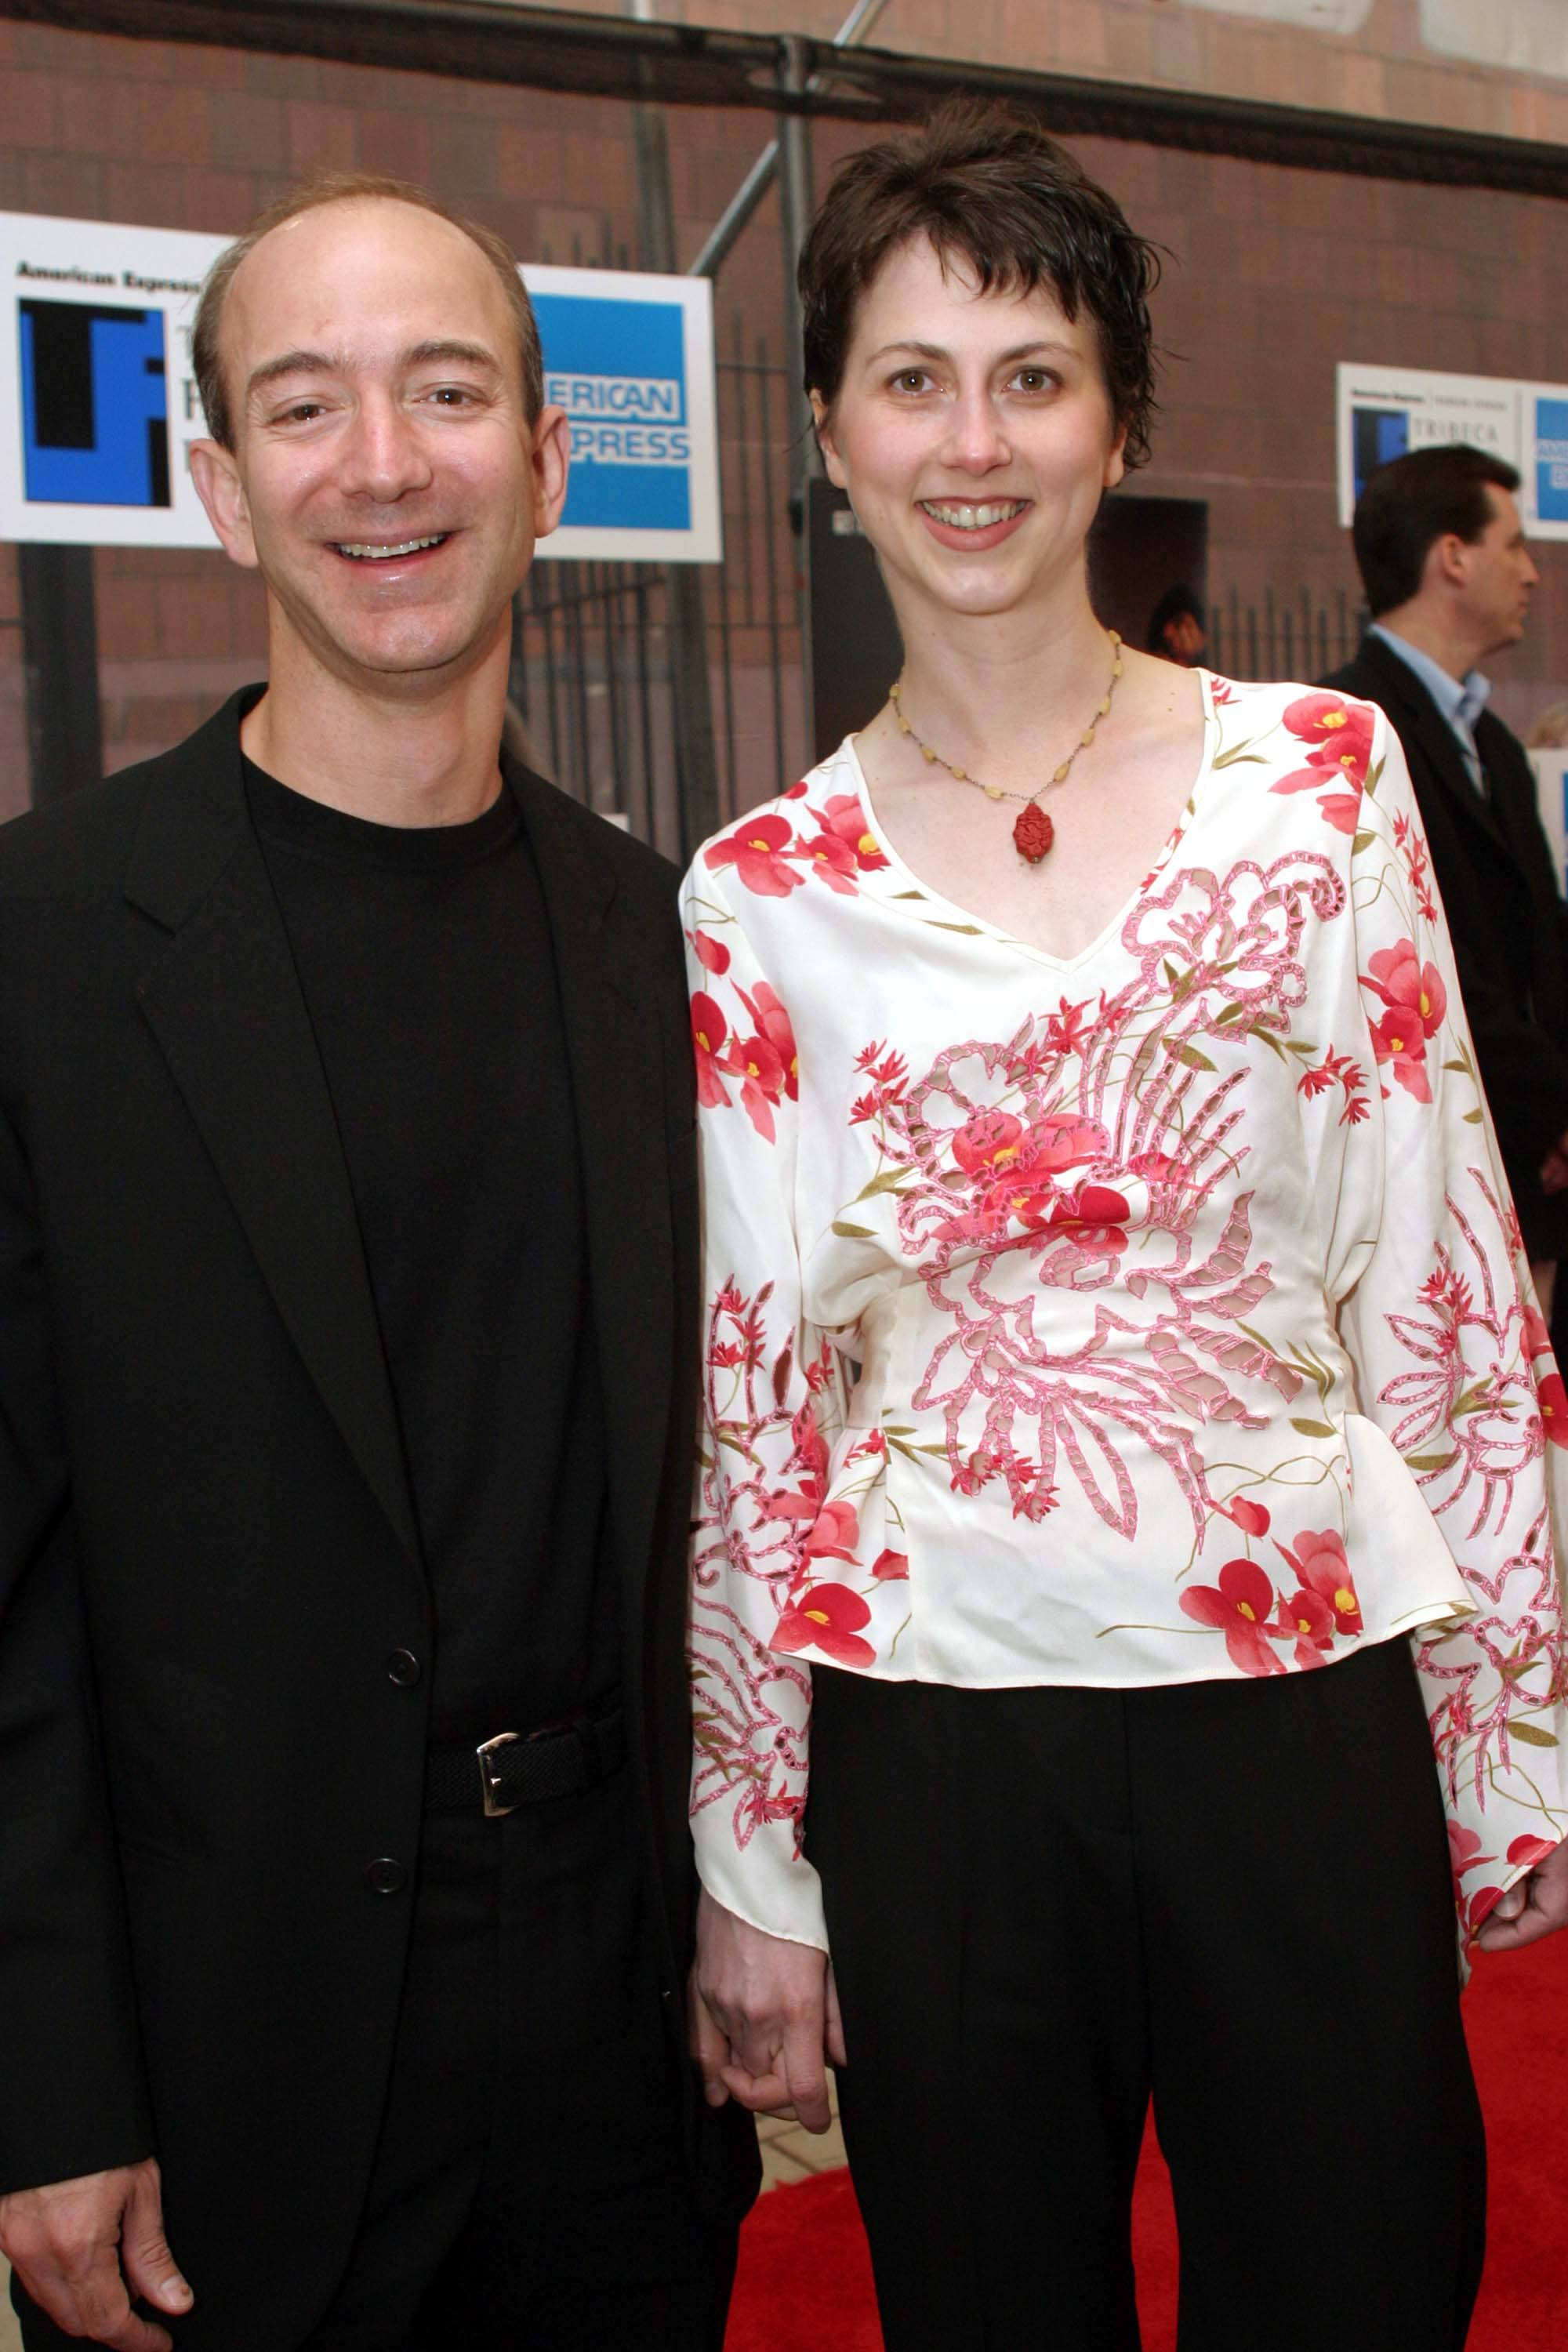 Jeff and Mackenzie Bezos at the premiere of 'The Italian Job' at the Tribeca Film Festival